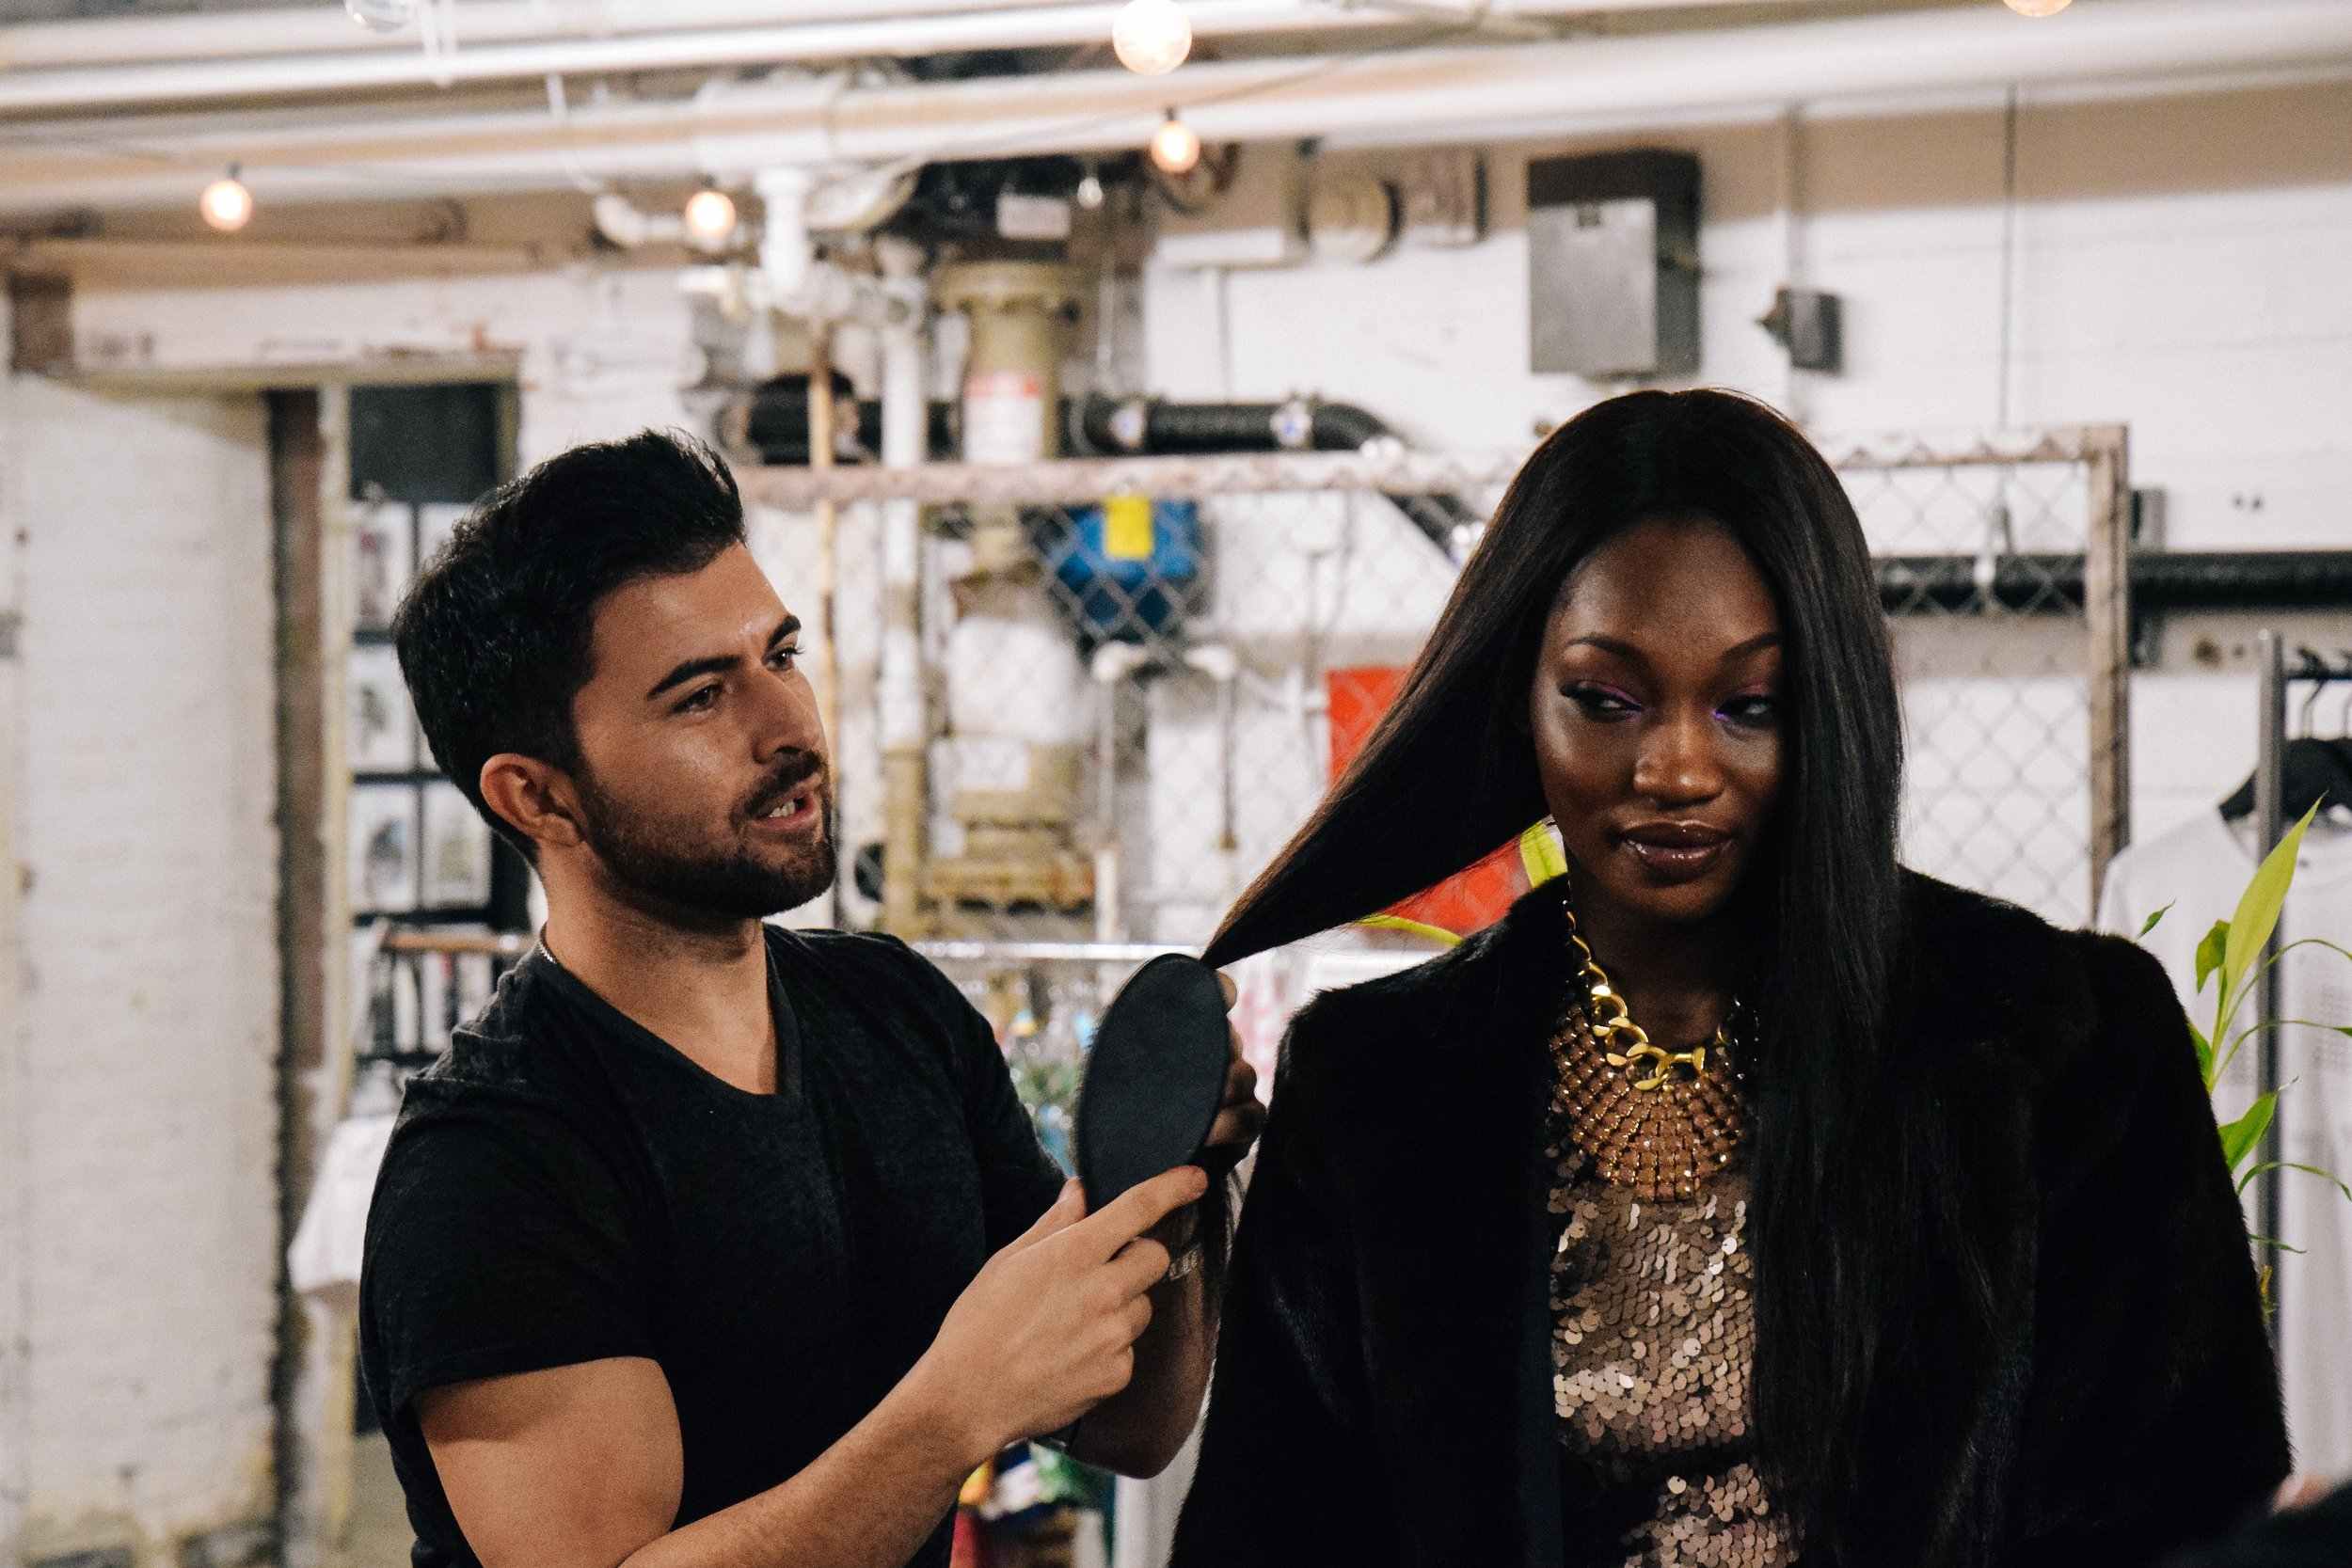 Model Arame being styled by Marcos Haro of Luxelab